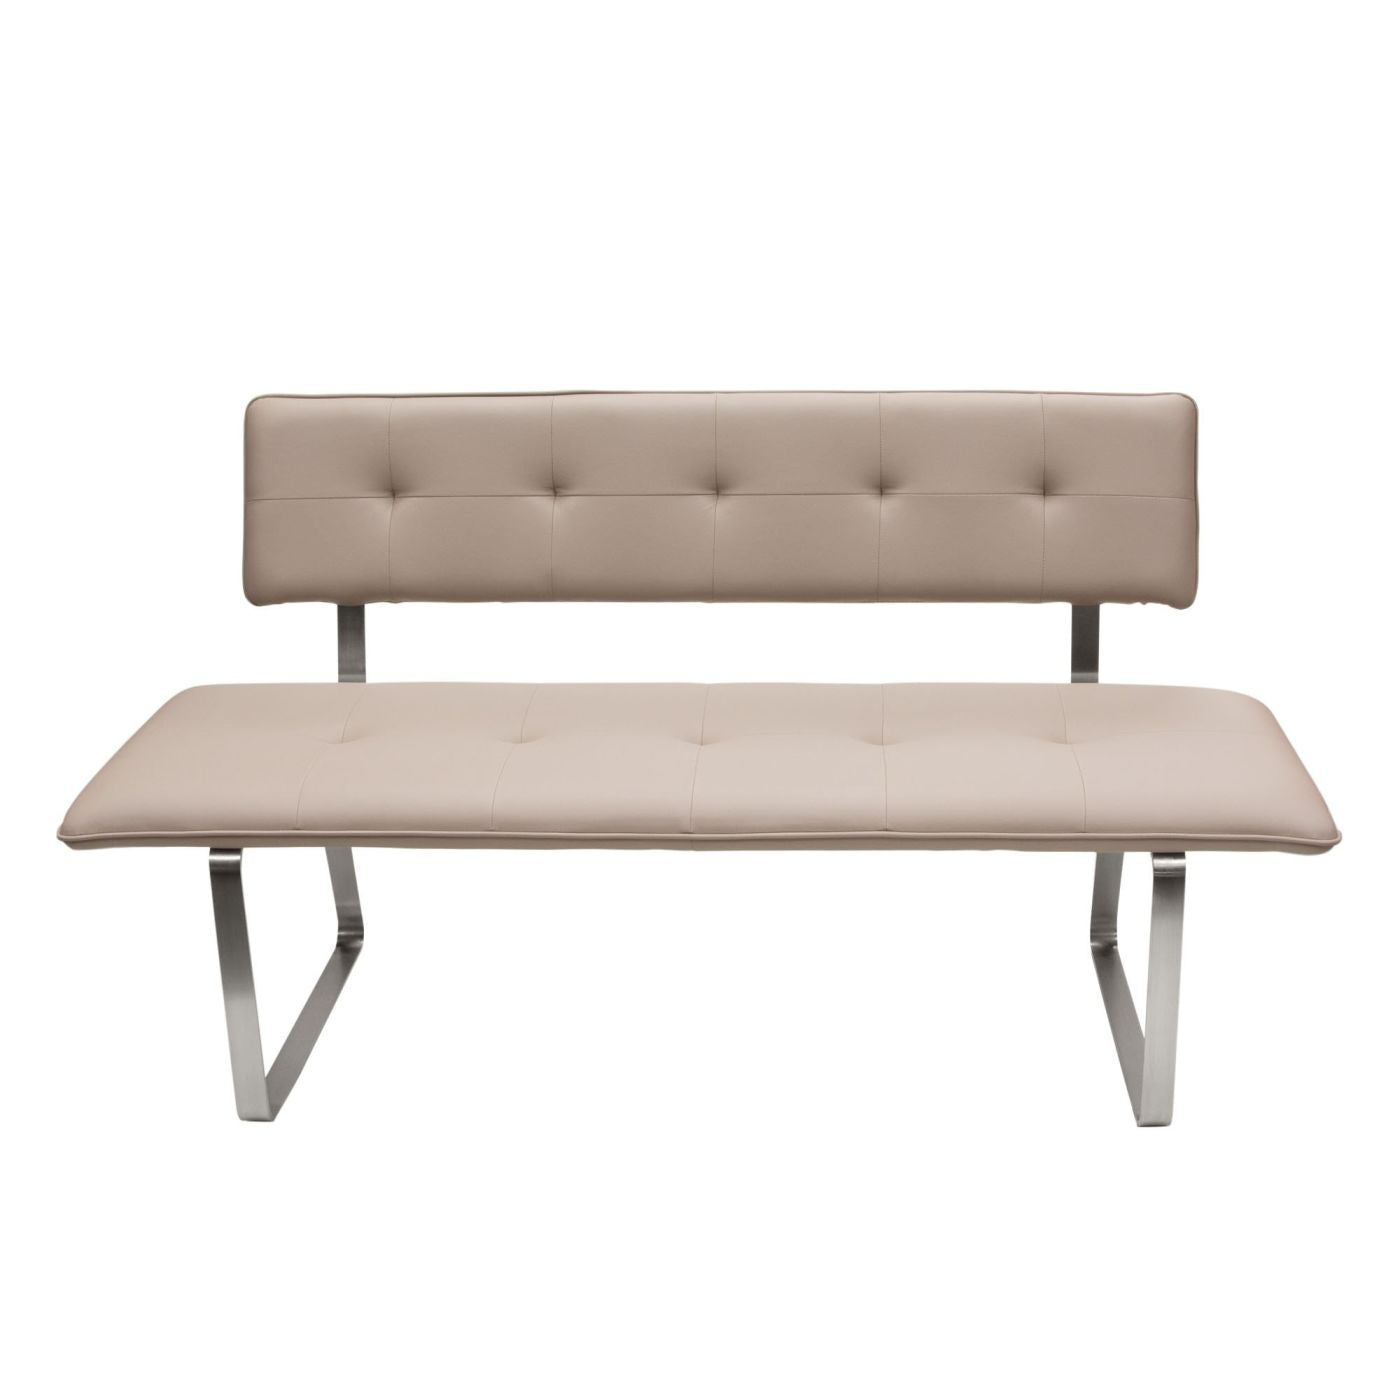 Diamond Sofa Maddox Bench with Tufted Seat & Back & Stainless Steel